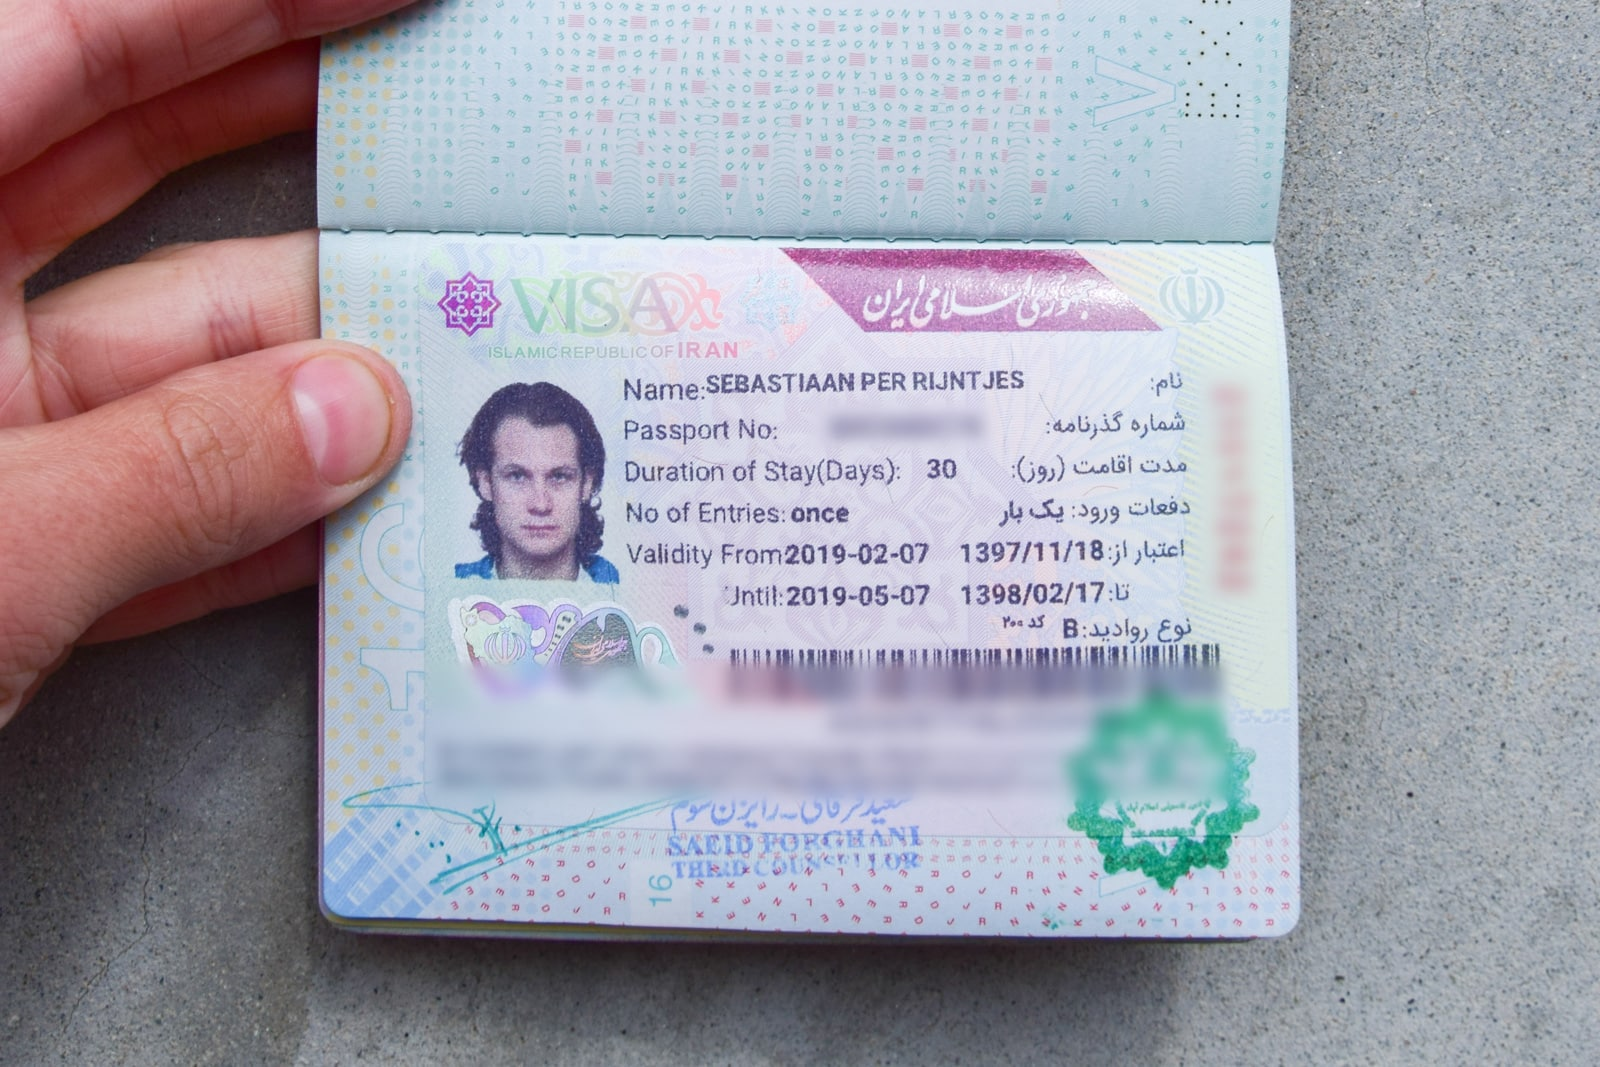 Applying for an Iran tourist visa in Islamabad, Pakistan